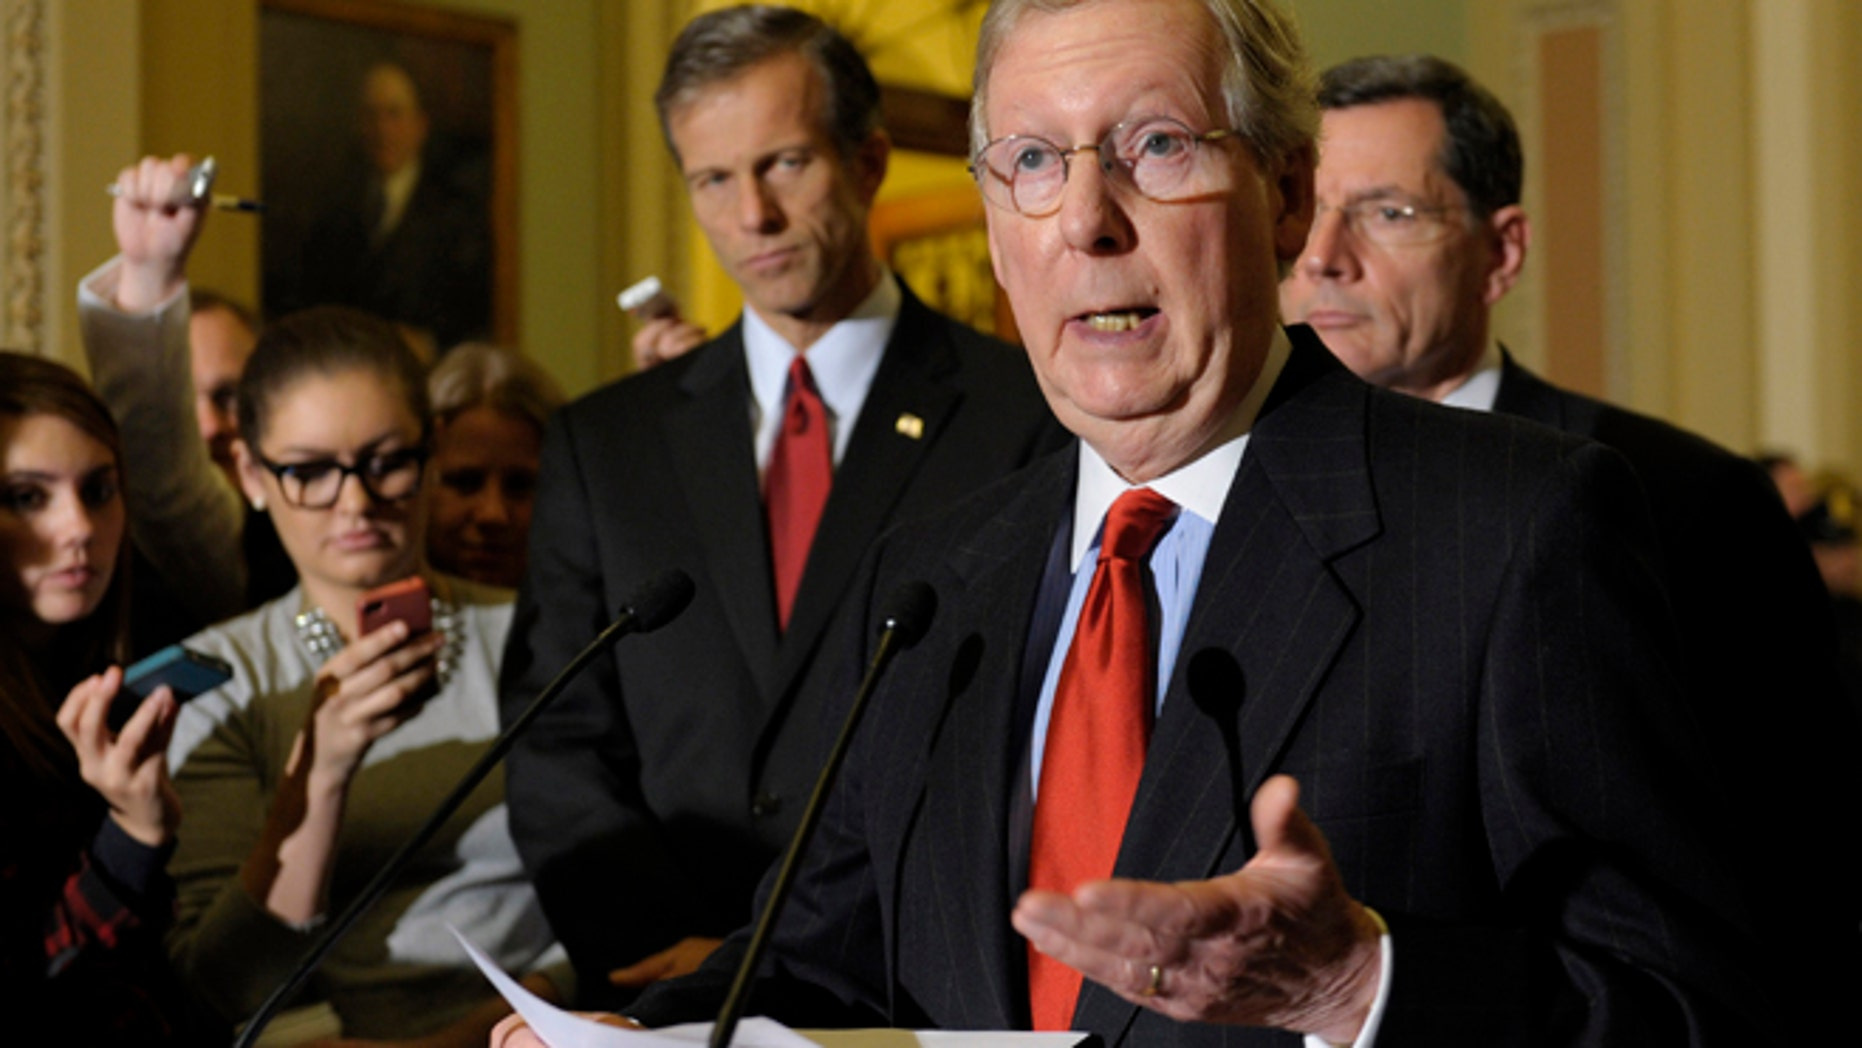 FILE: Dec. 18, 2012: Senate Minority Leader Mitch McConnell, R-Ky., on Capitol Hill, in Washington, D.C.